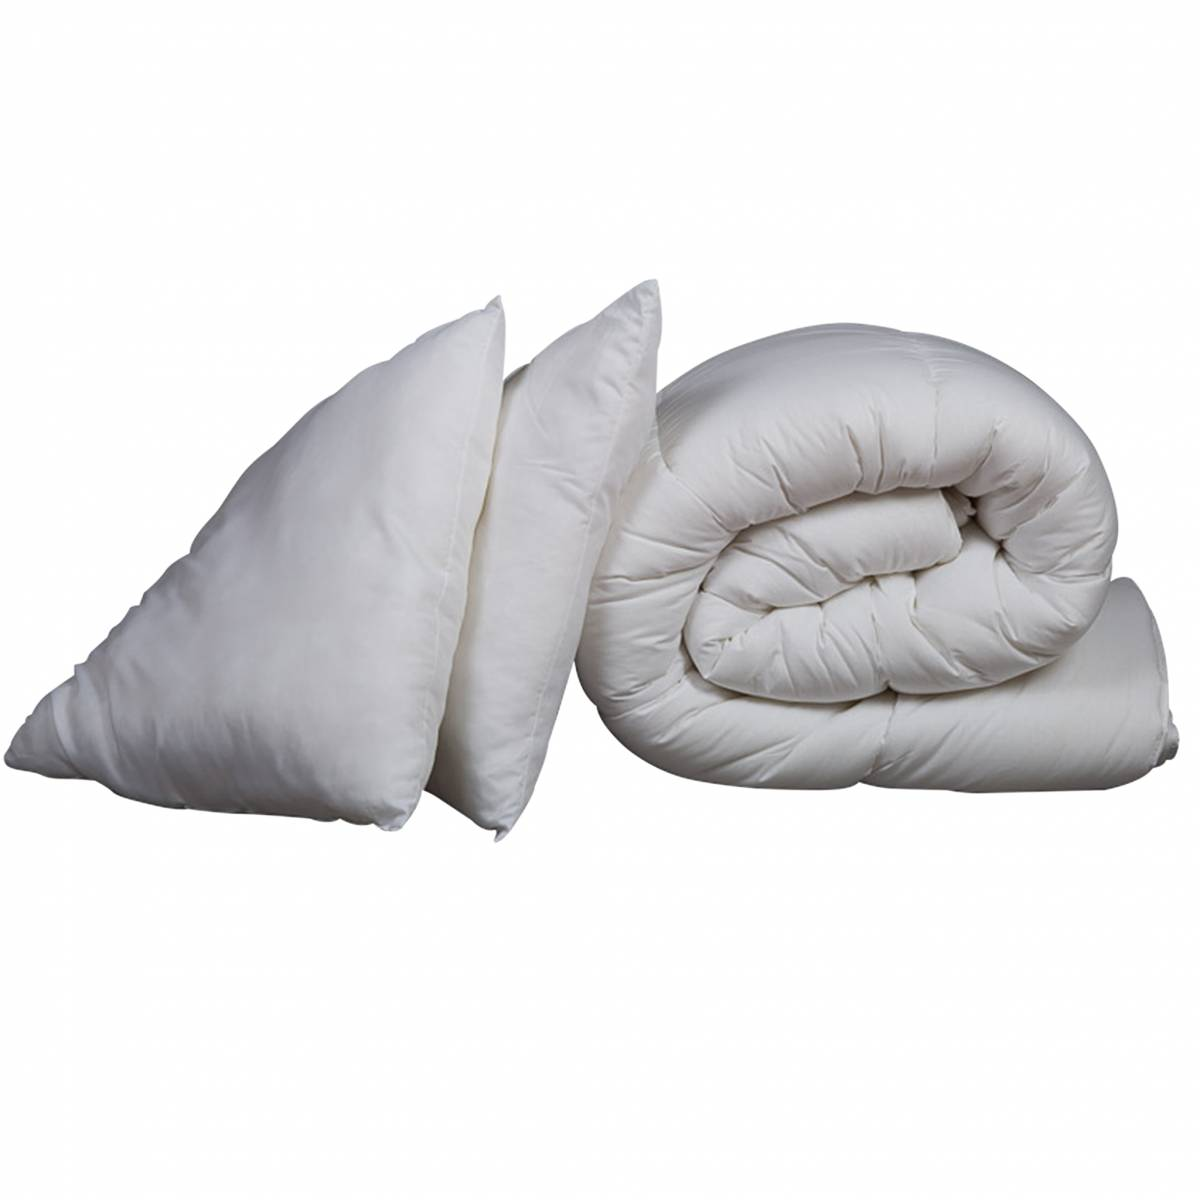 Someo Pack couette hiver 600g 140x200 et oreiller luxe anti-acariens SOMEO